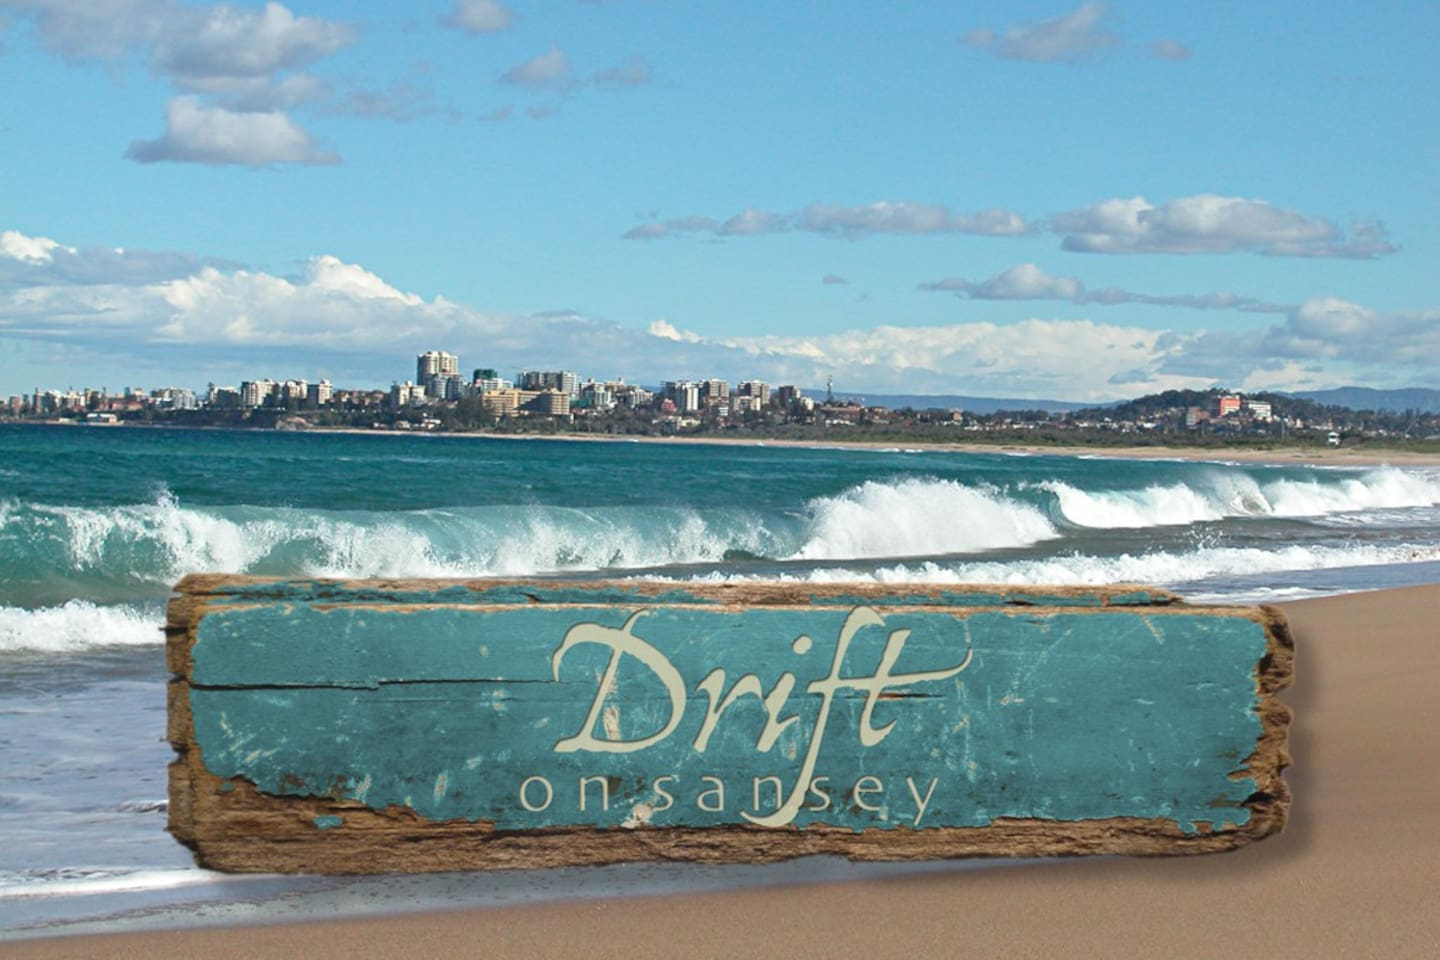 Drift is located only a 5 min drive from some of our greatest beaches, a source for our drift wood and shells supplies, used in our mosaic and decorative art